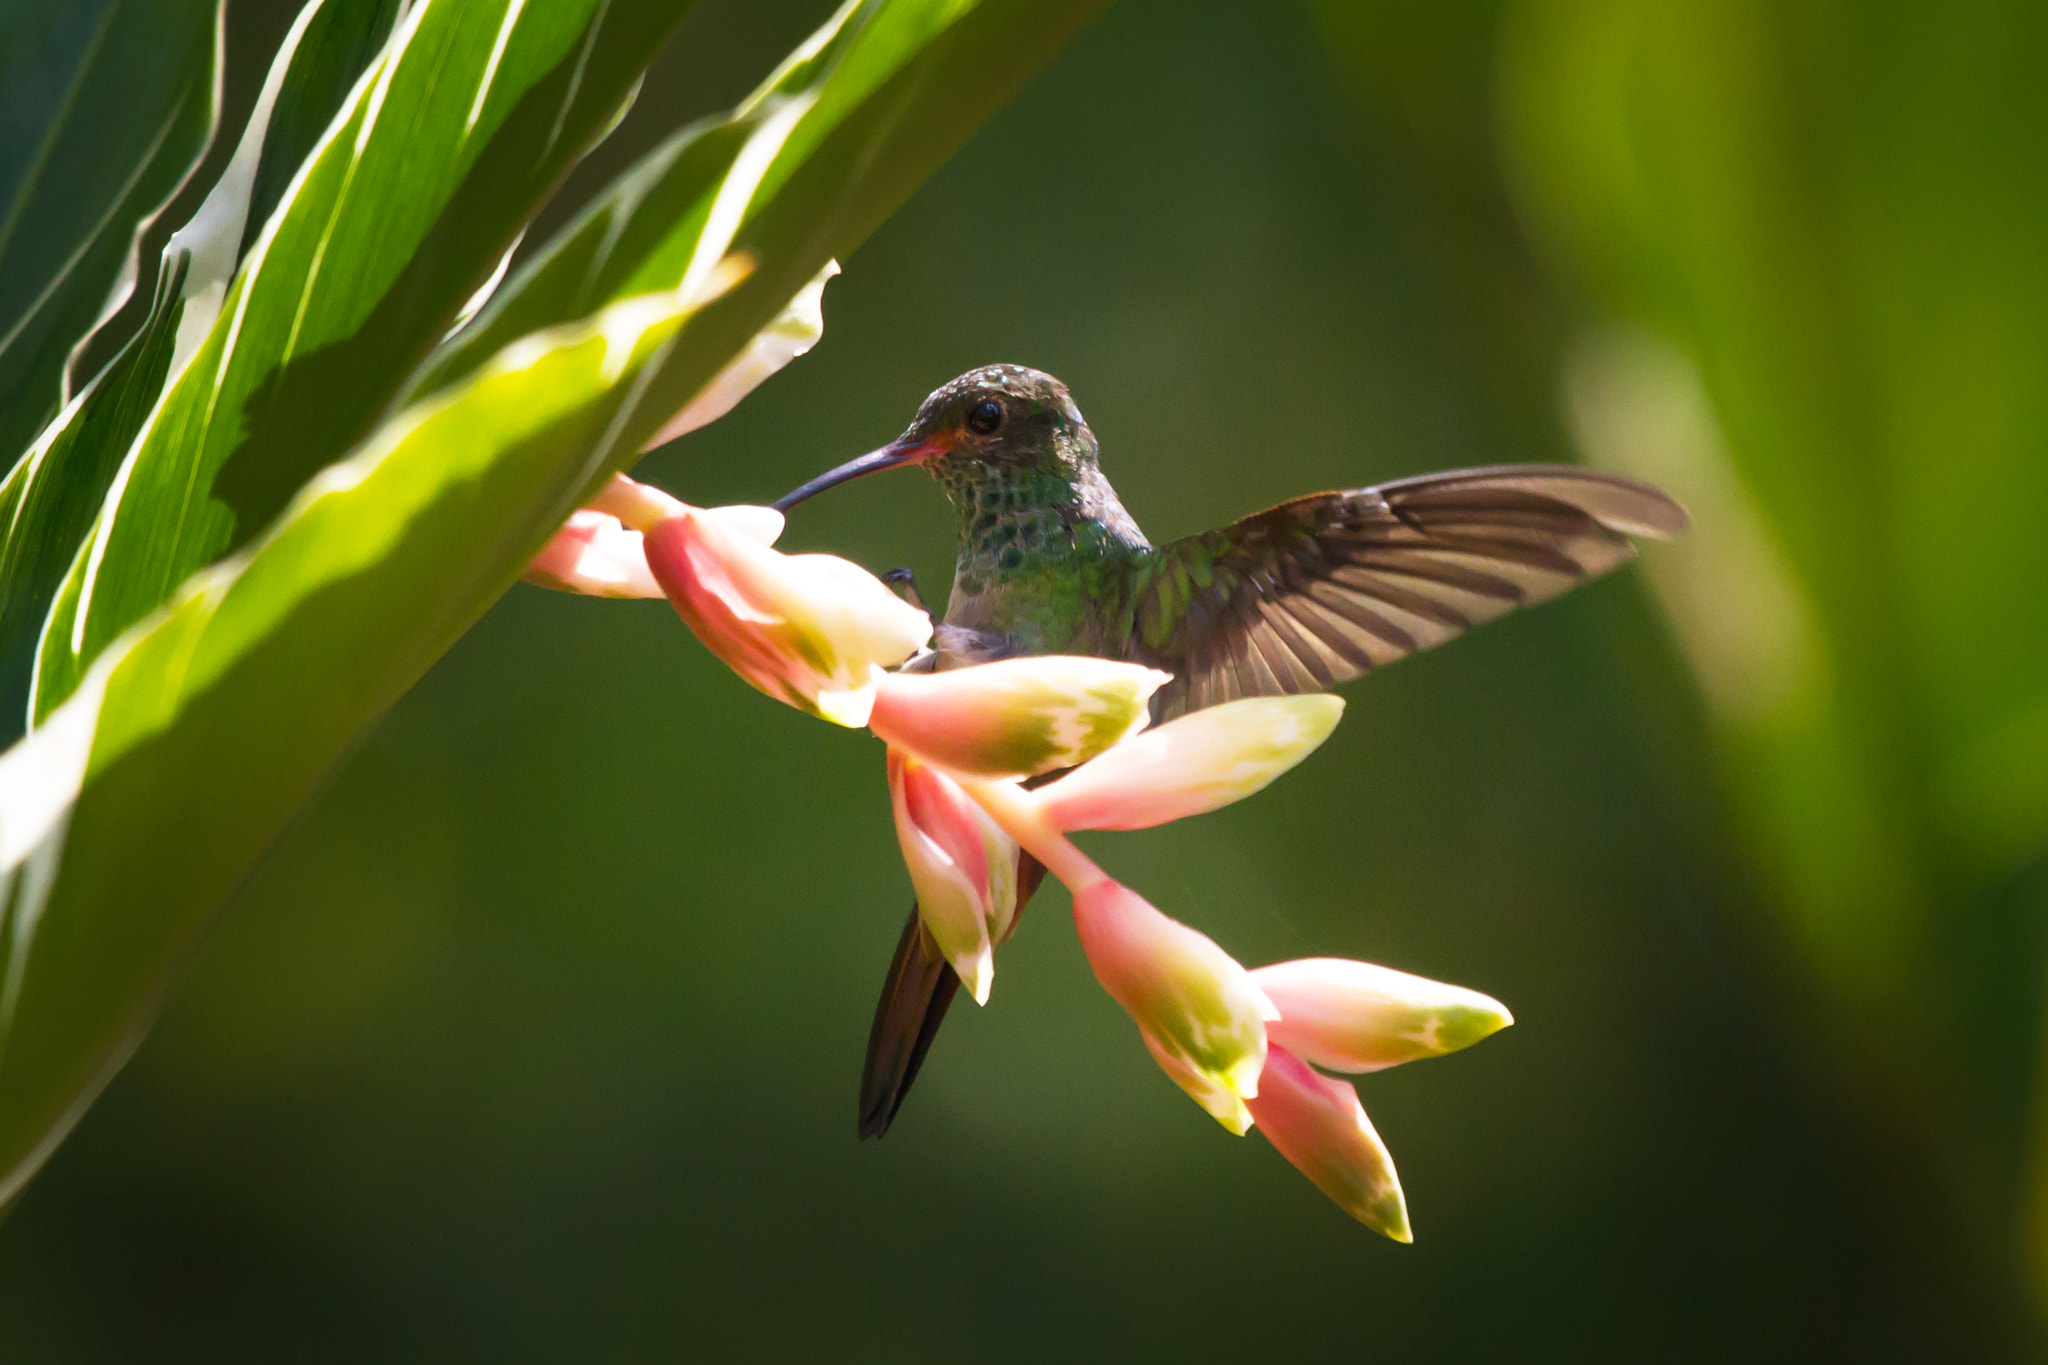 Photograph Hummingbird by Marc Guille on 500px